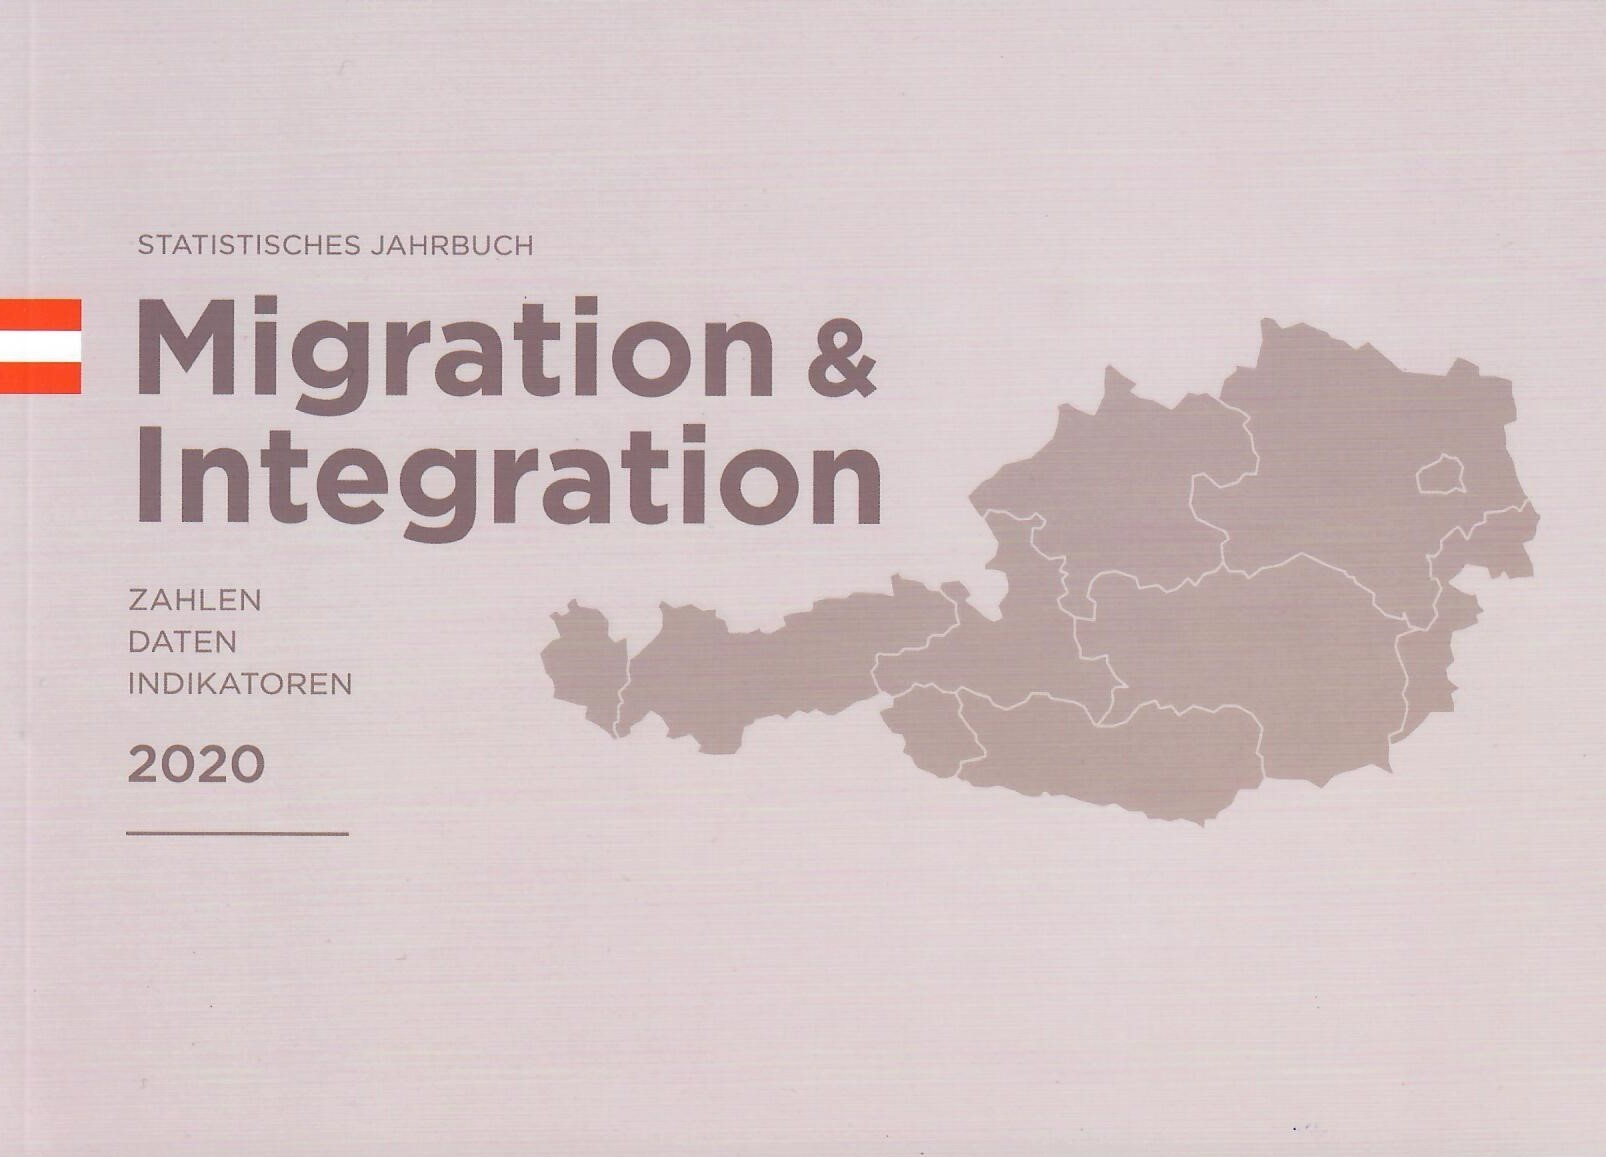 Migration und Integration 2020